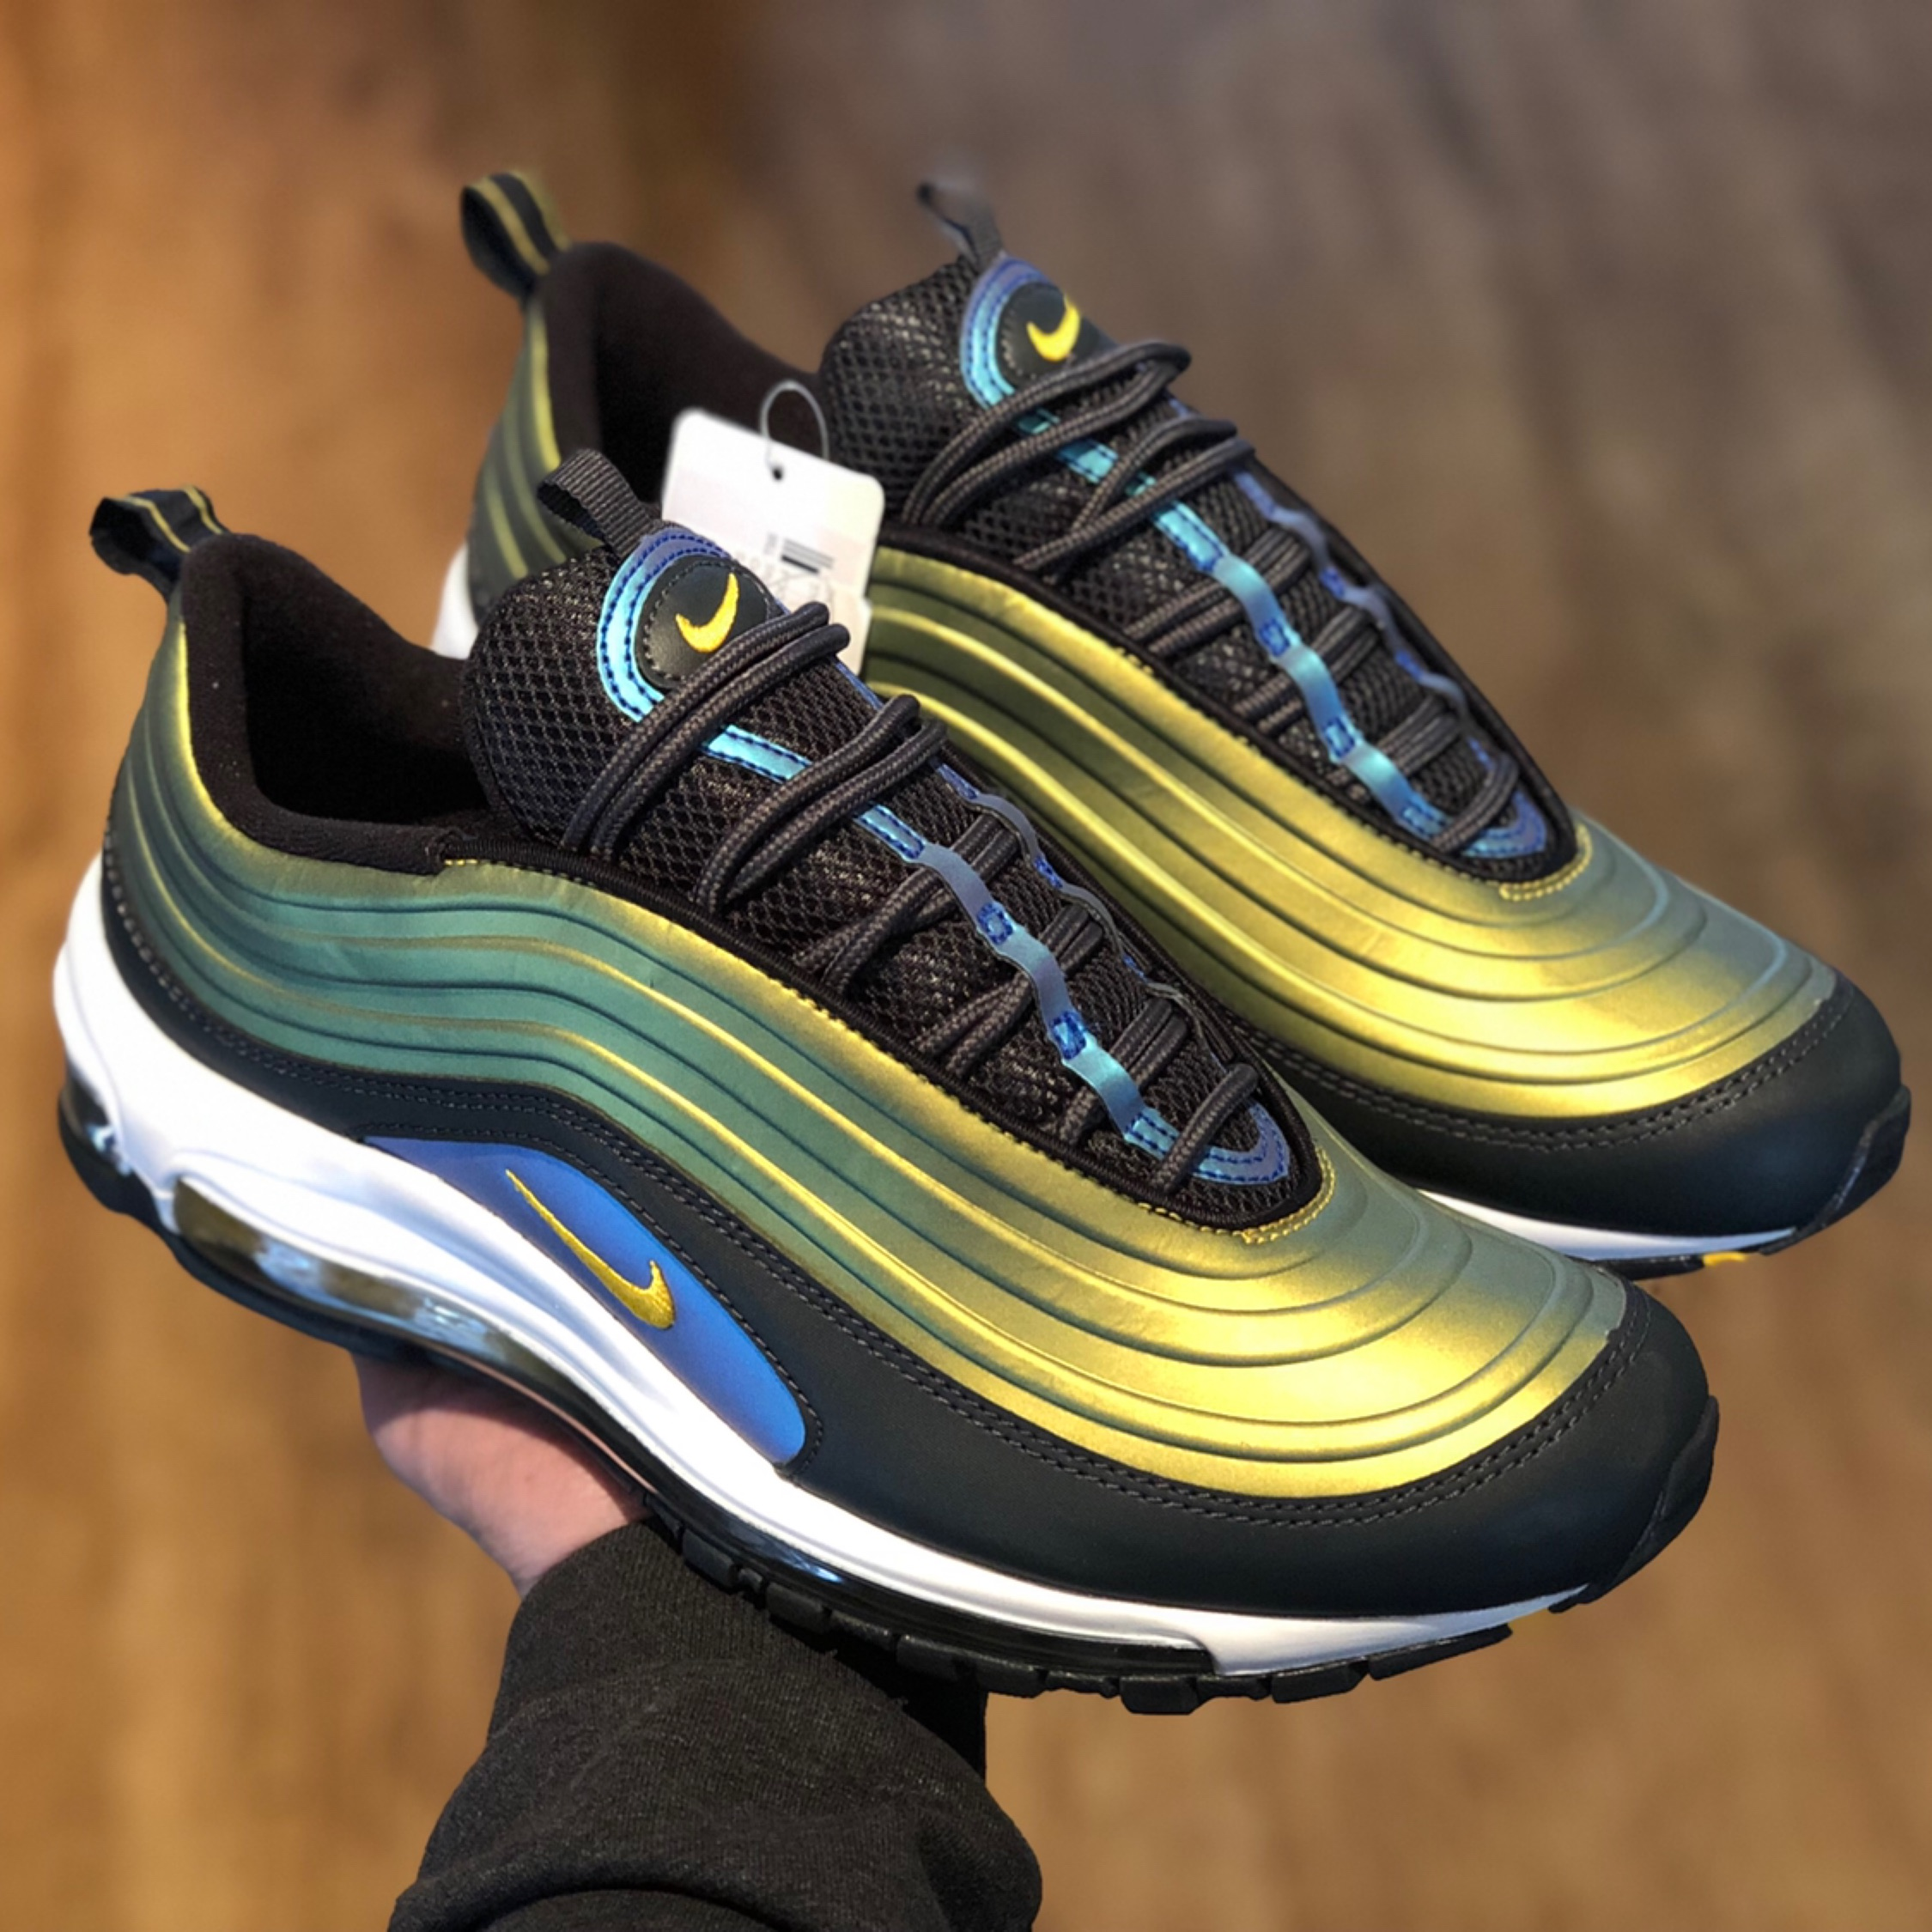 Details about Nike Air Max 97 Ultra 17 SI Vented AO2326 100 White UK 8 EU 42.5 27.5cm US 10.5